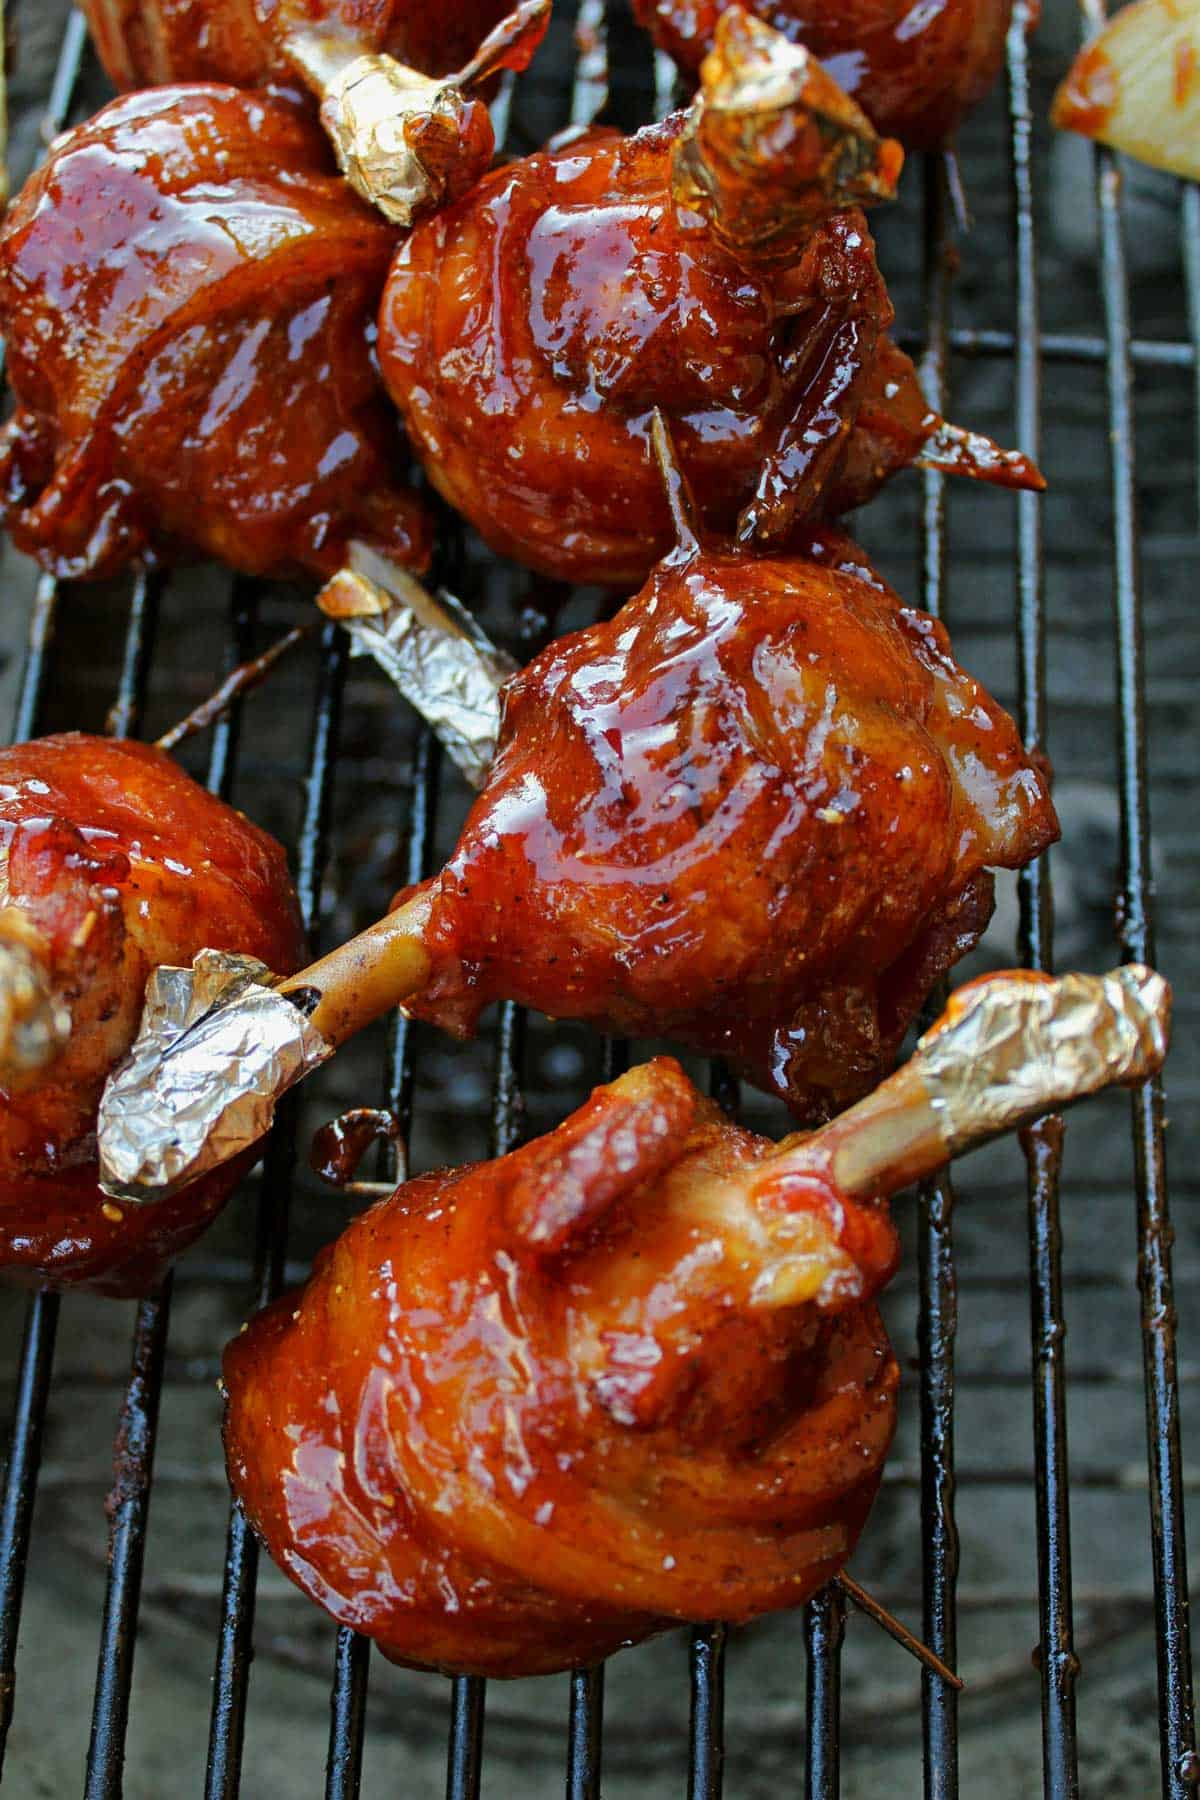 BBQ chicken lollipops are chicken drumsticks seasoned with a dry rub, wrapped in bacon and smoked with barbecue sauce. An inexpensive way to please a crowd!